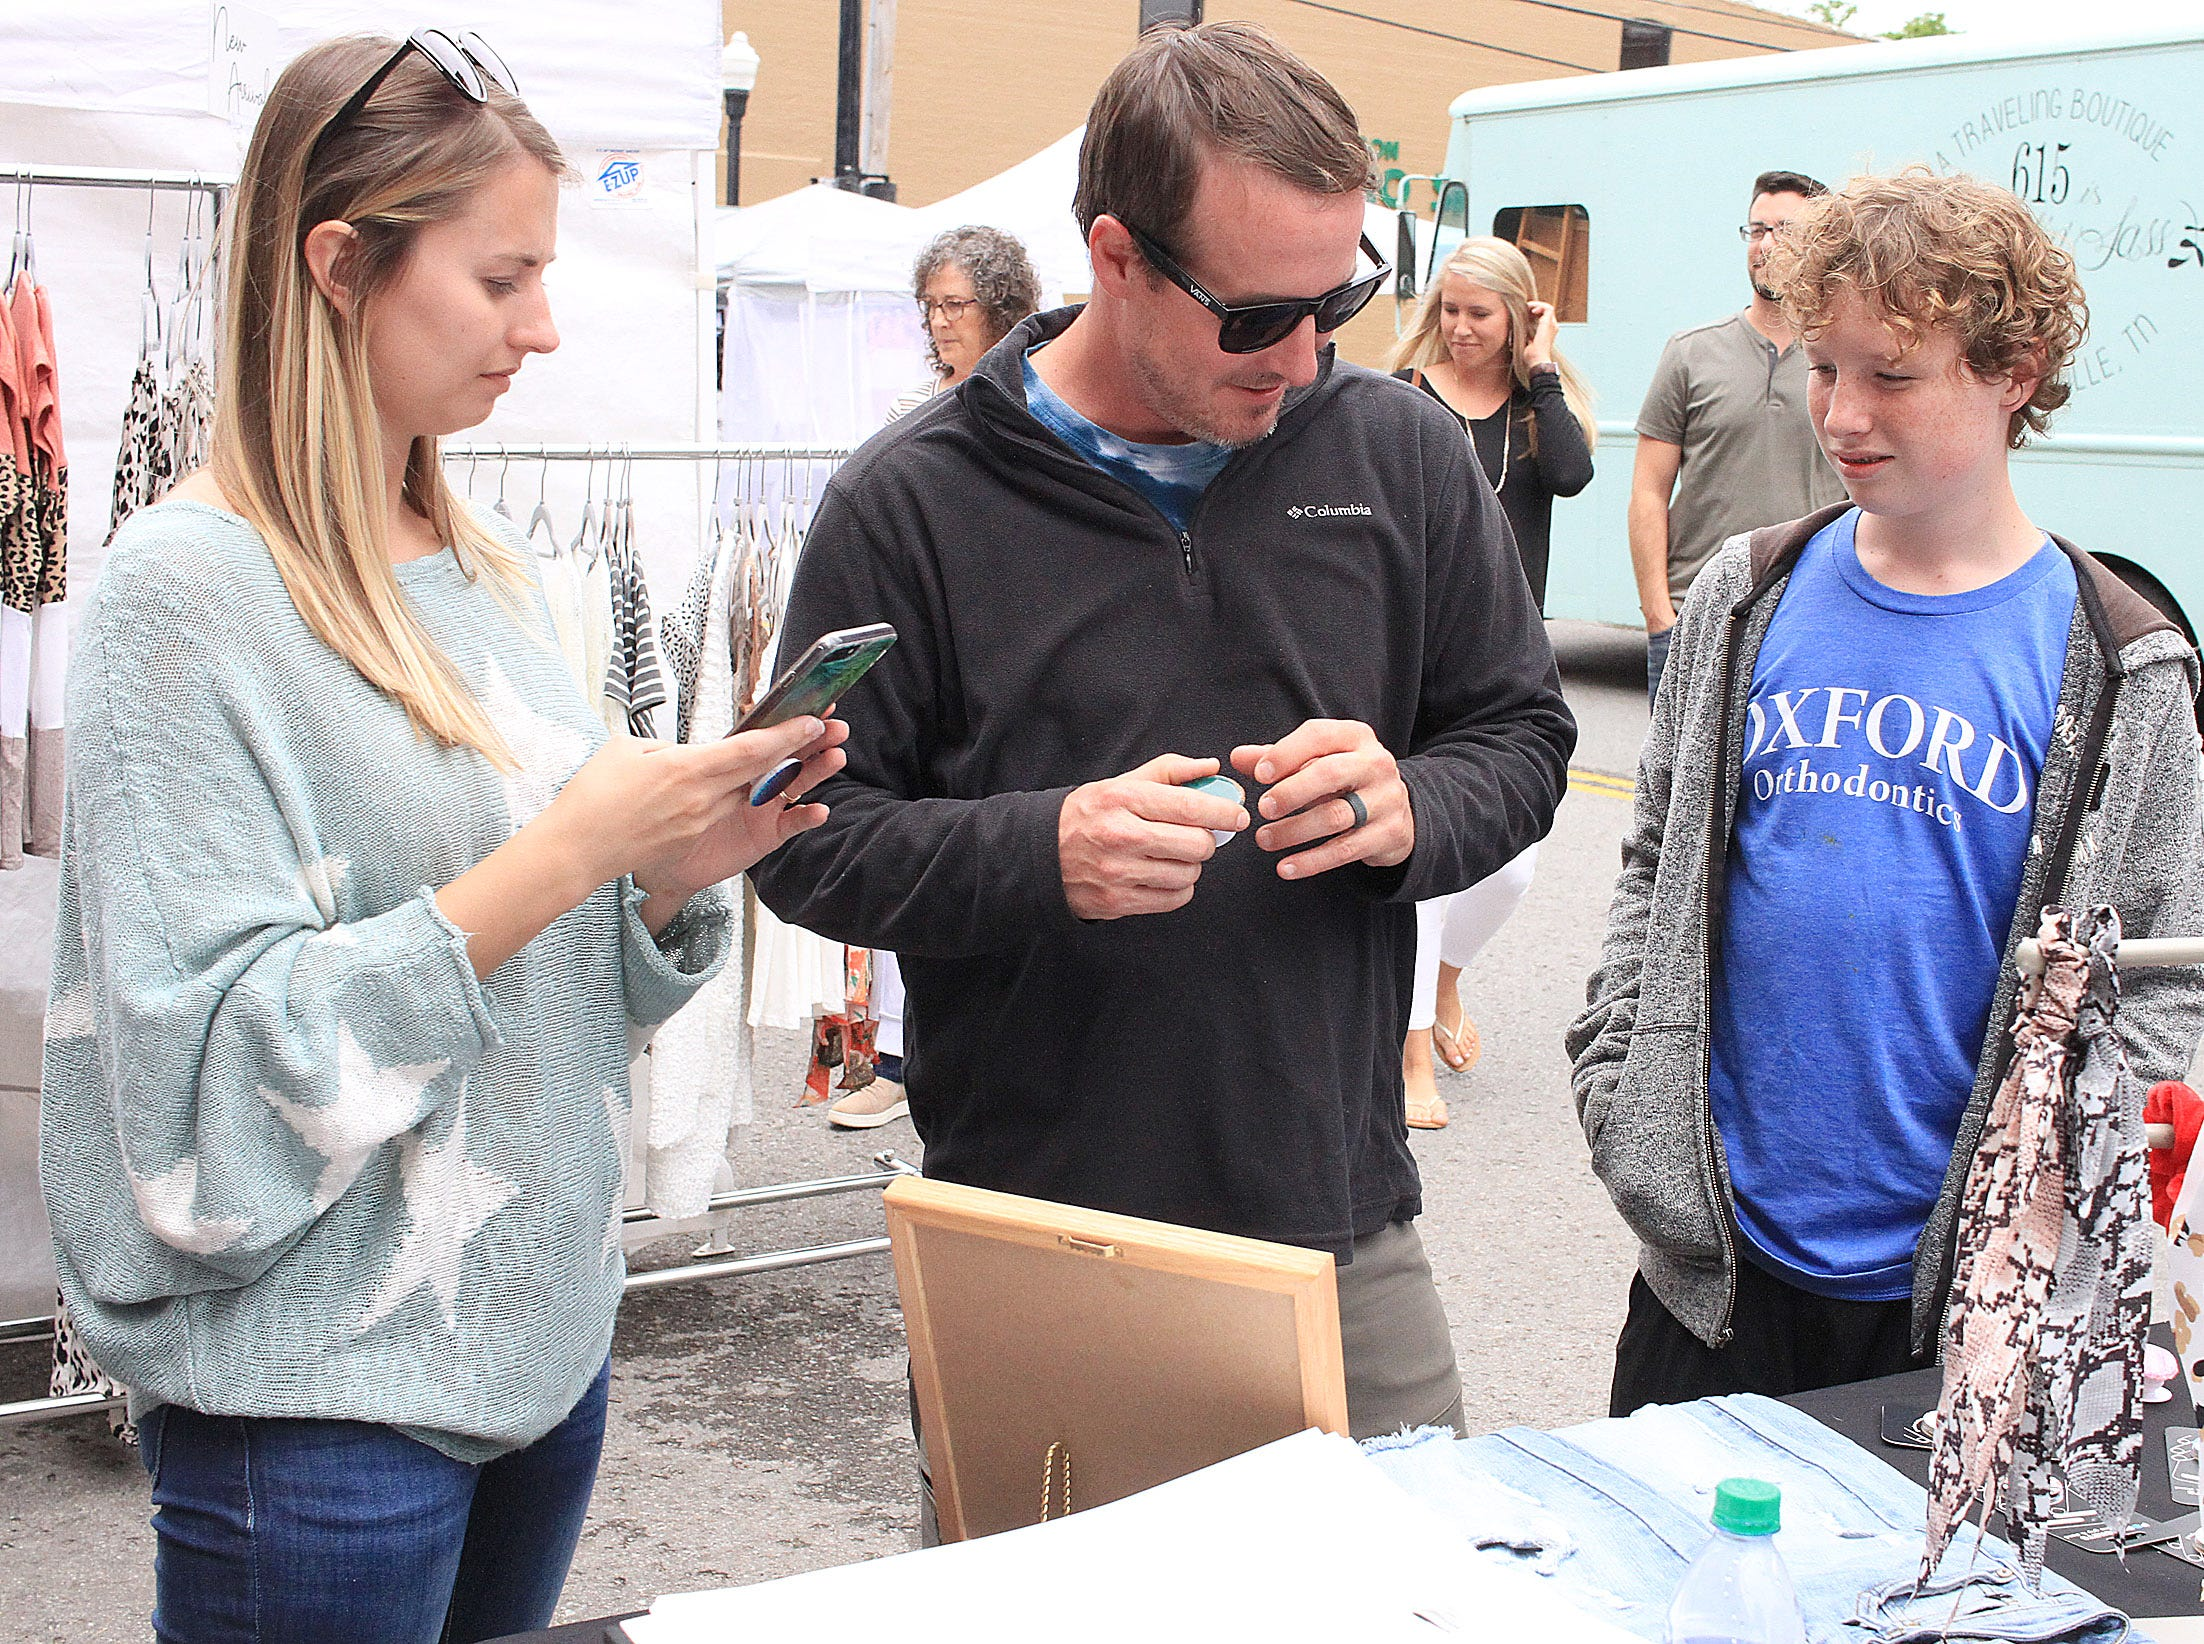 Katie Higgins shows some phone devices to Jared and Carson Kakalski at the Fashion Crawl in Gallatin , TN on Saturday, May 11, 2019.